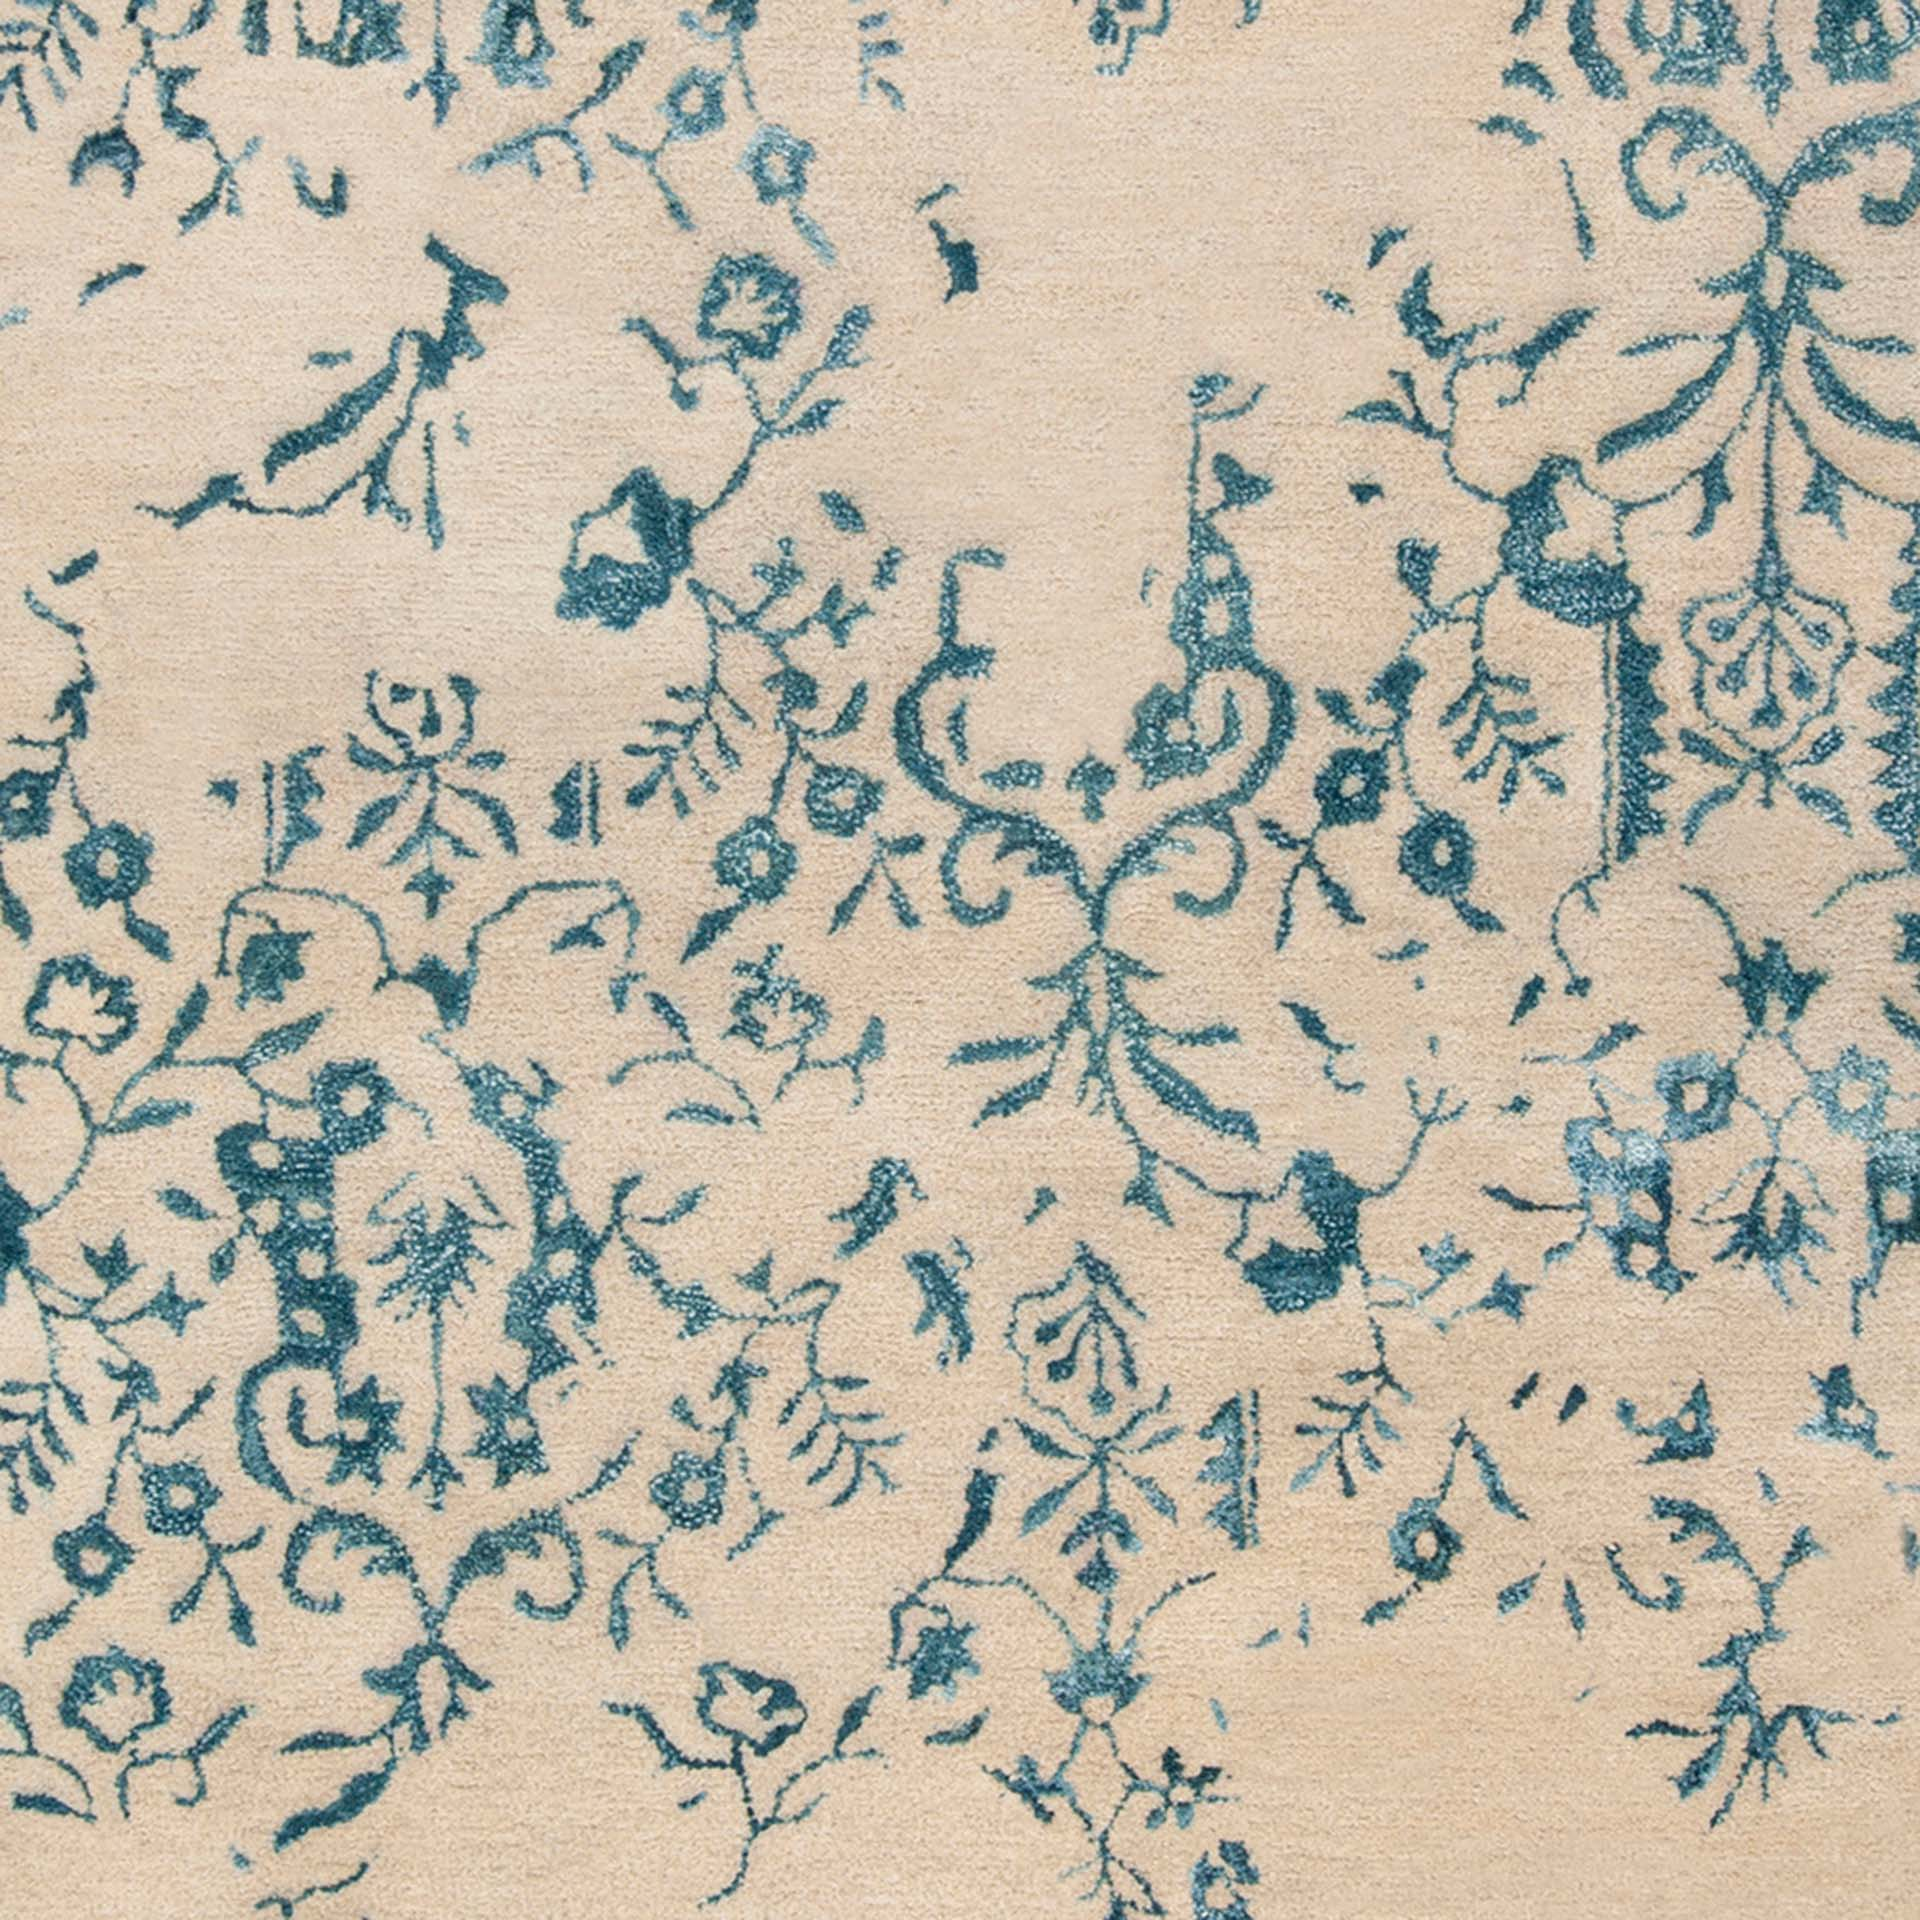 Trendy hand-tufted area rug from India with hints of blue and white from the Surya Banshee collection - Closeup of floral pattern